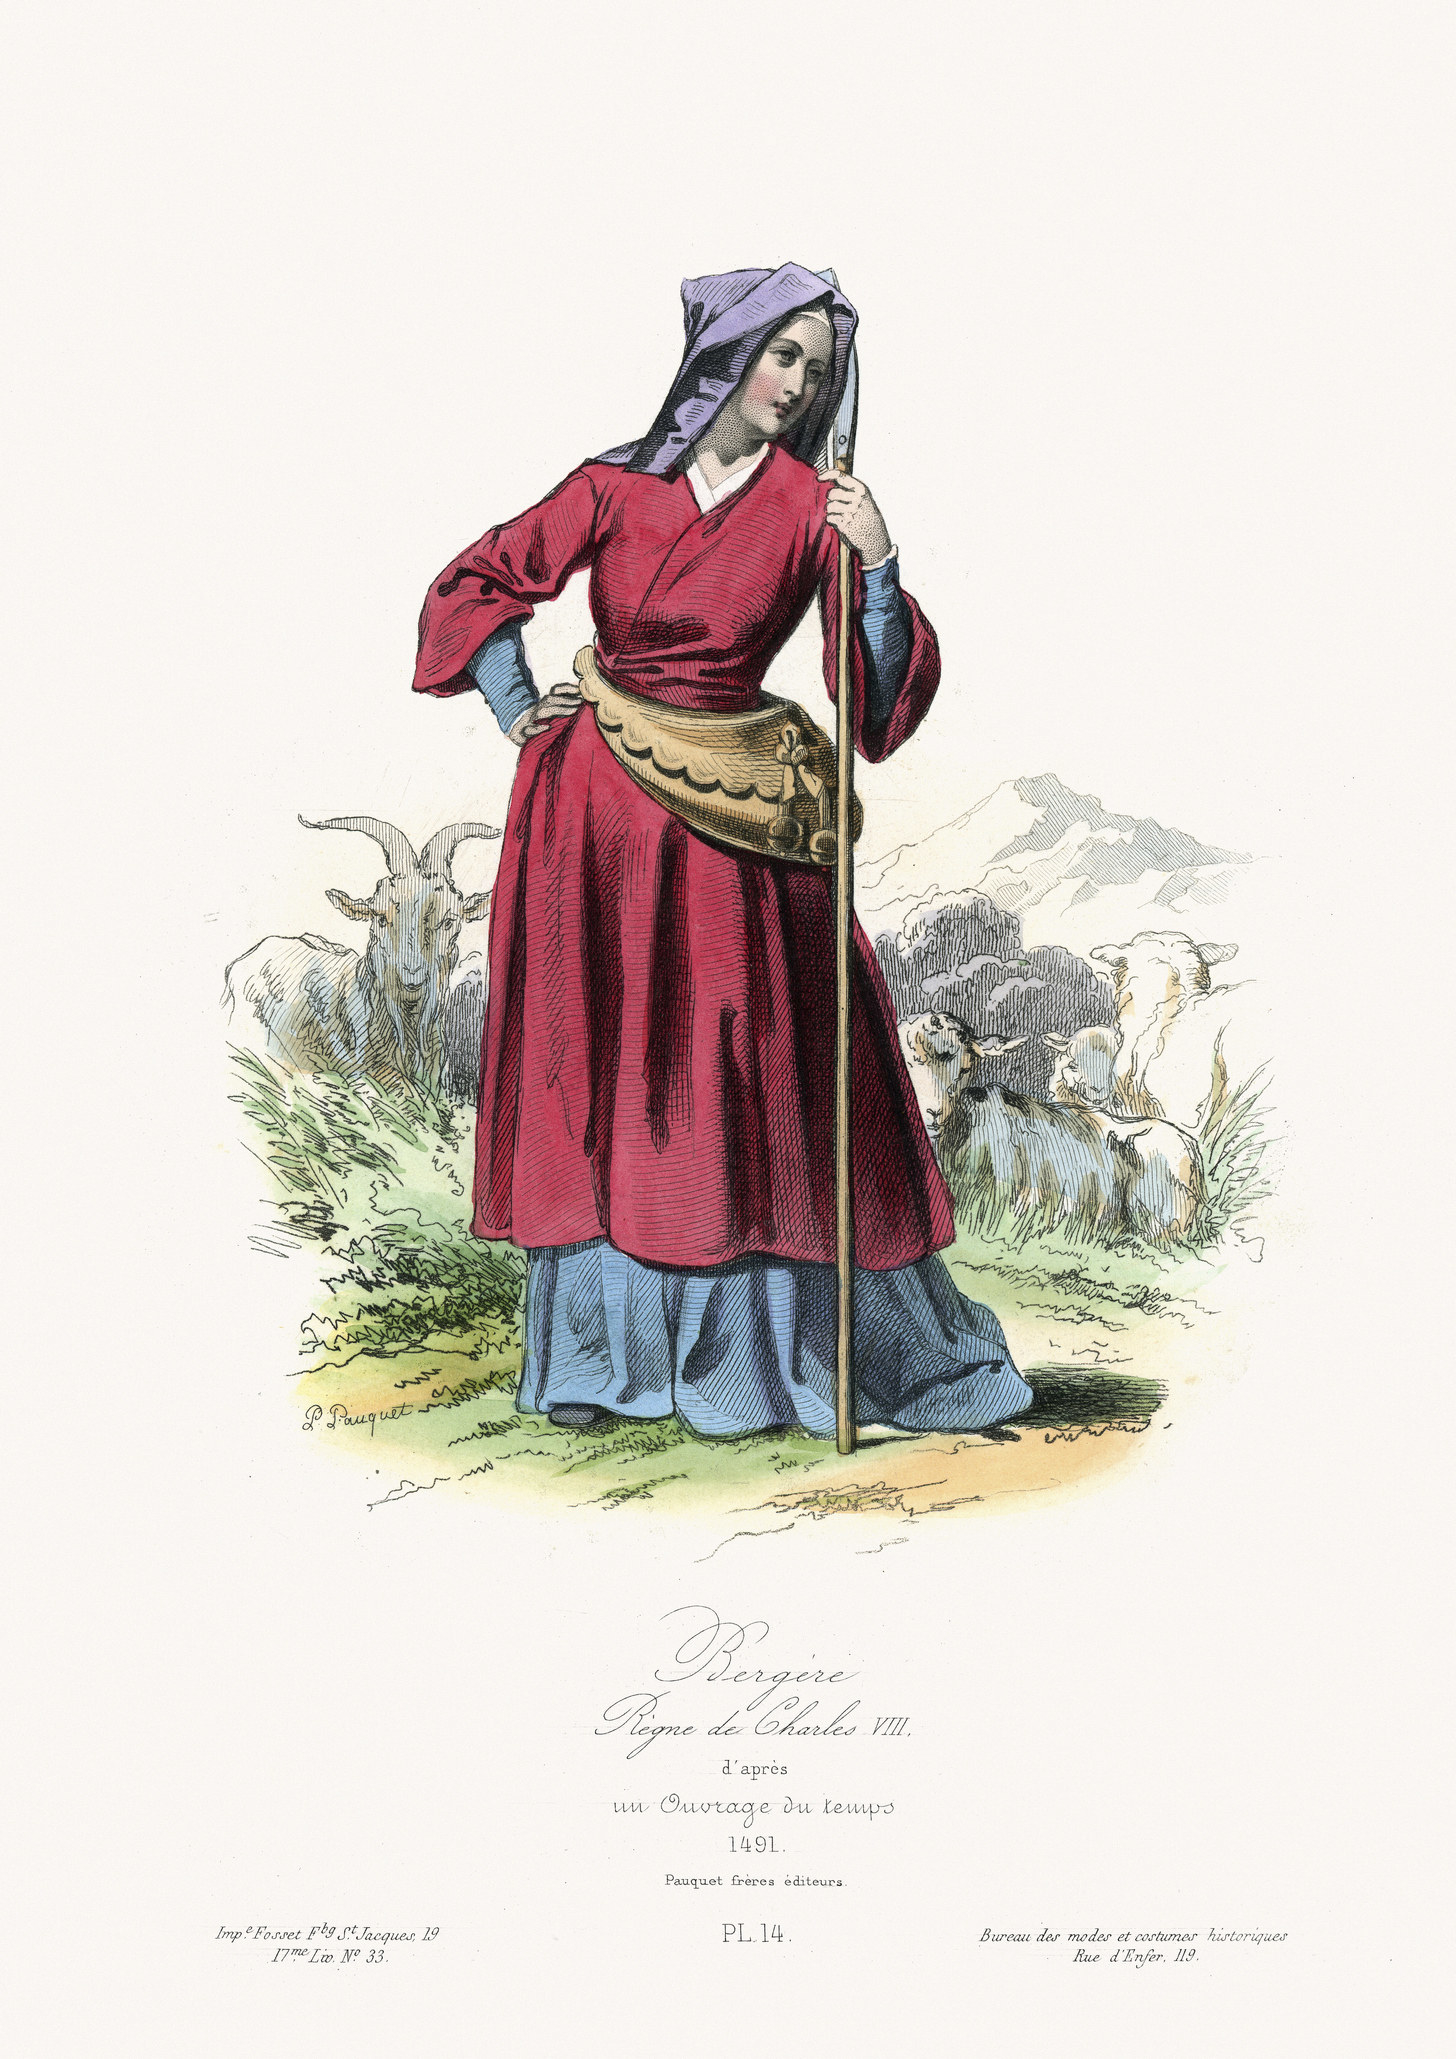 herder in colorful dress